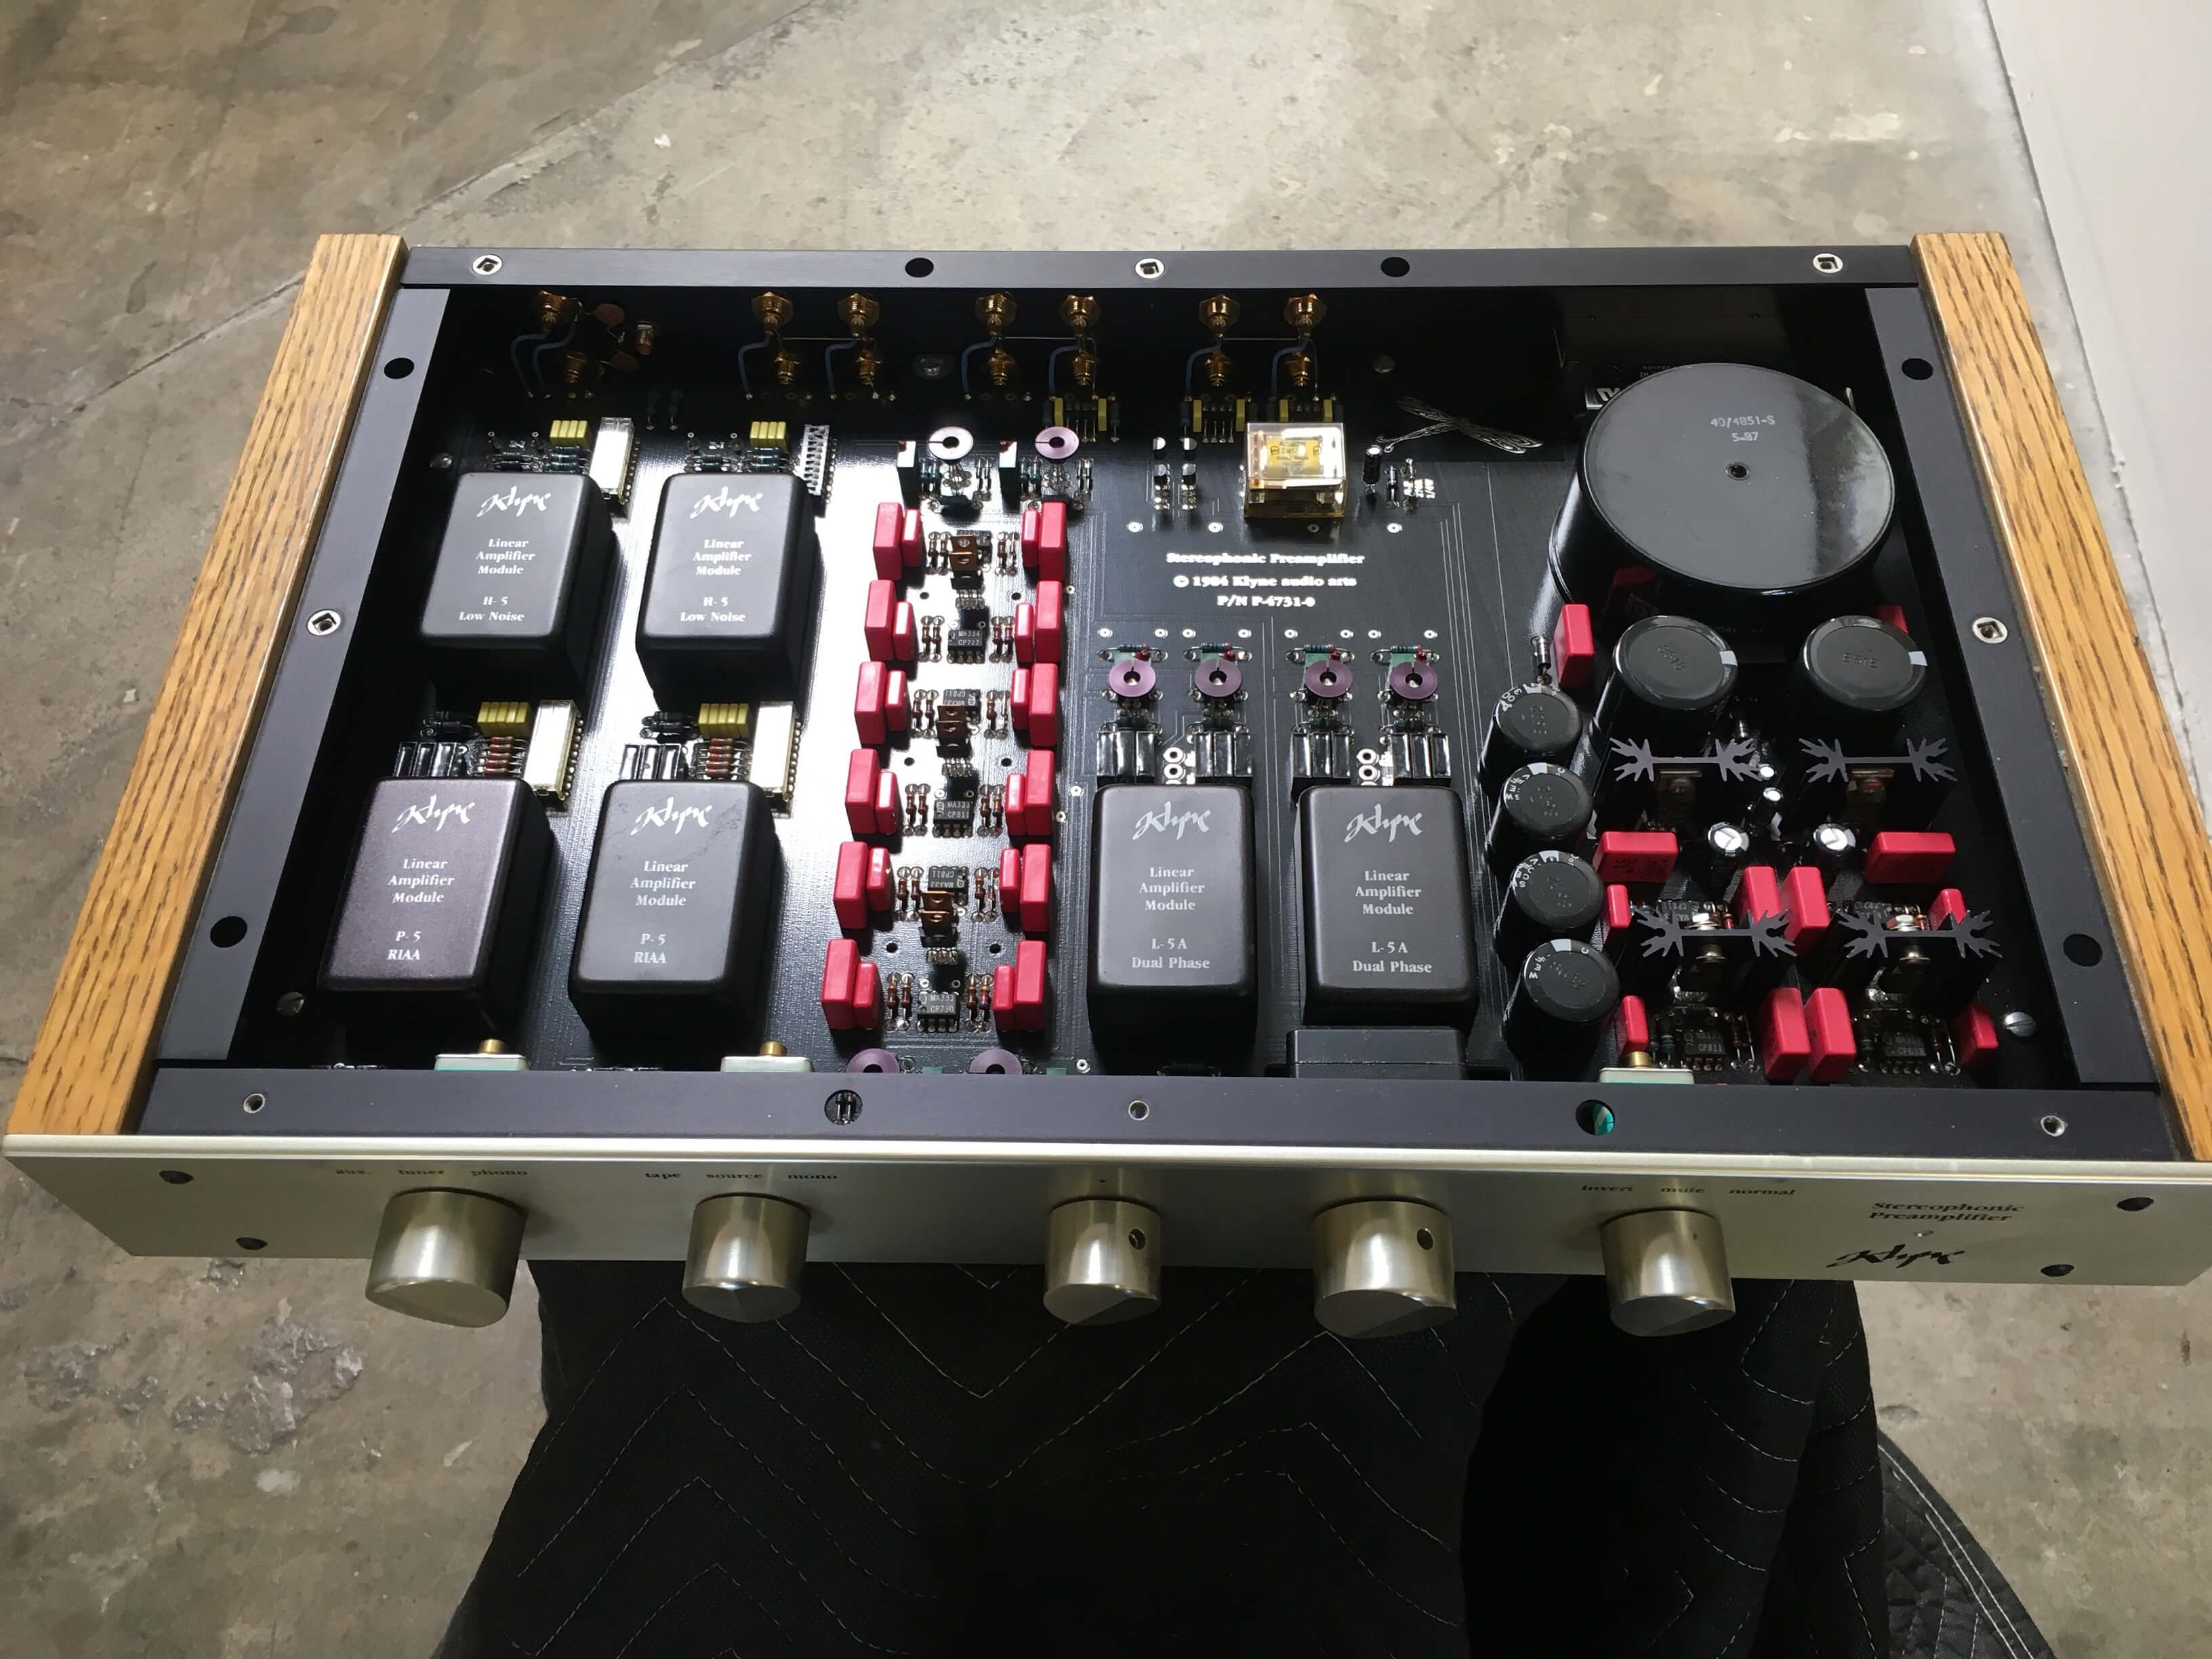 Klyne stereophonic preamplifier SK-5A